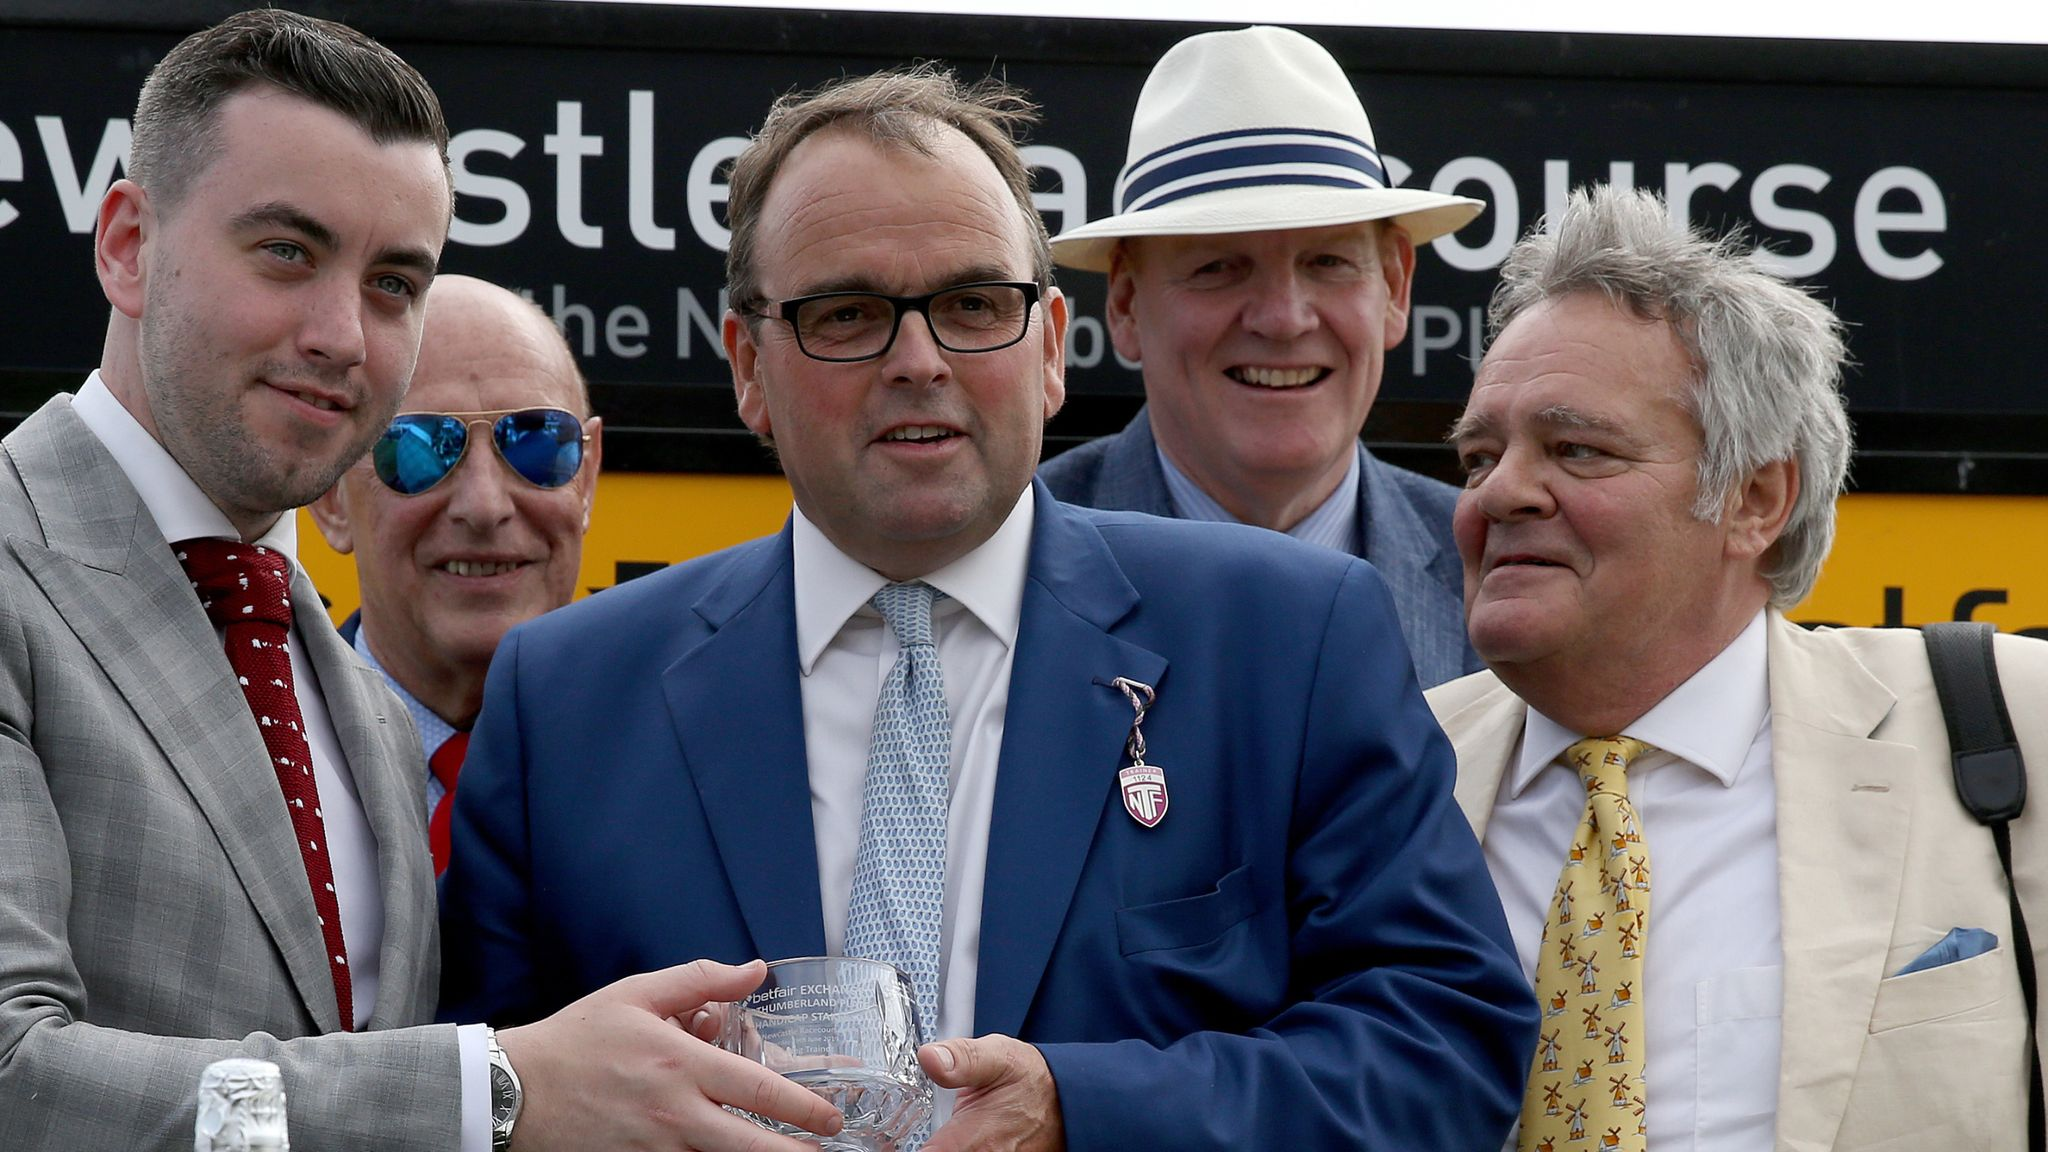 Alan King lands Newbury feature with Tritonic